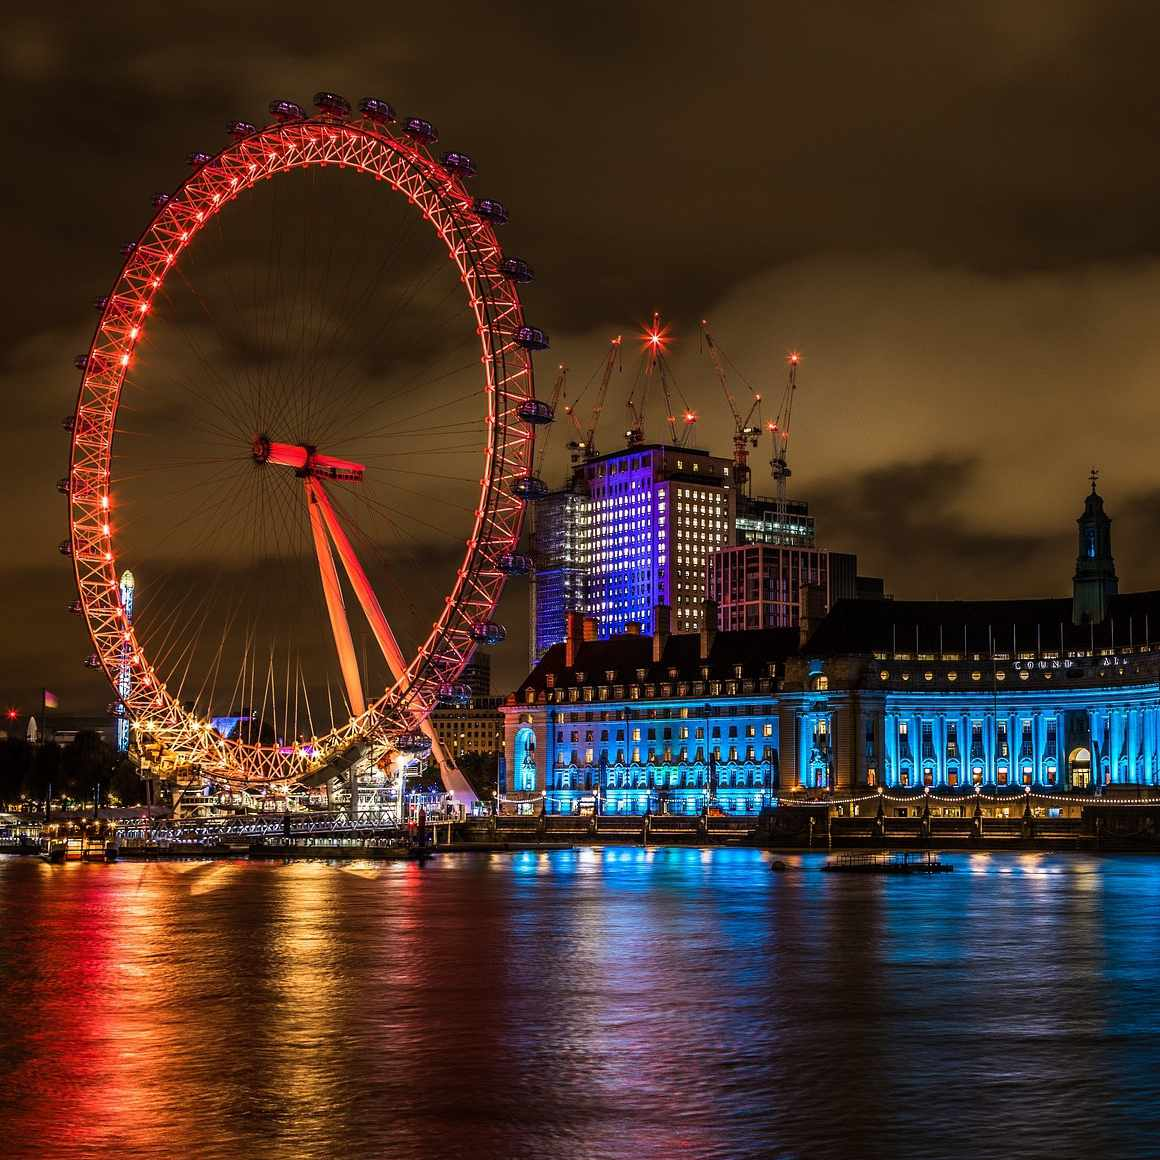 The London Eye at night all lit up.